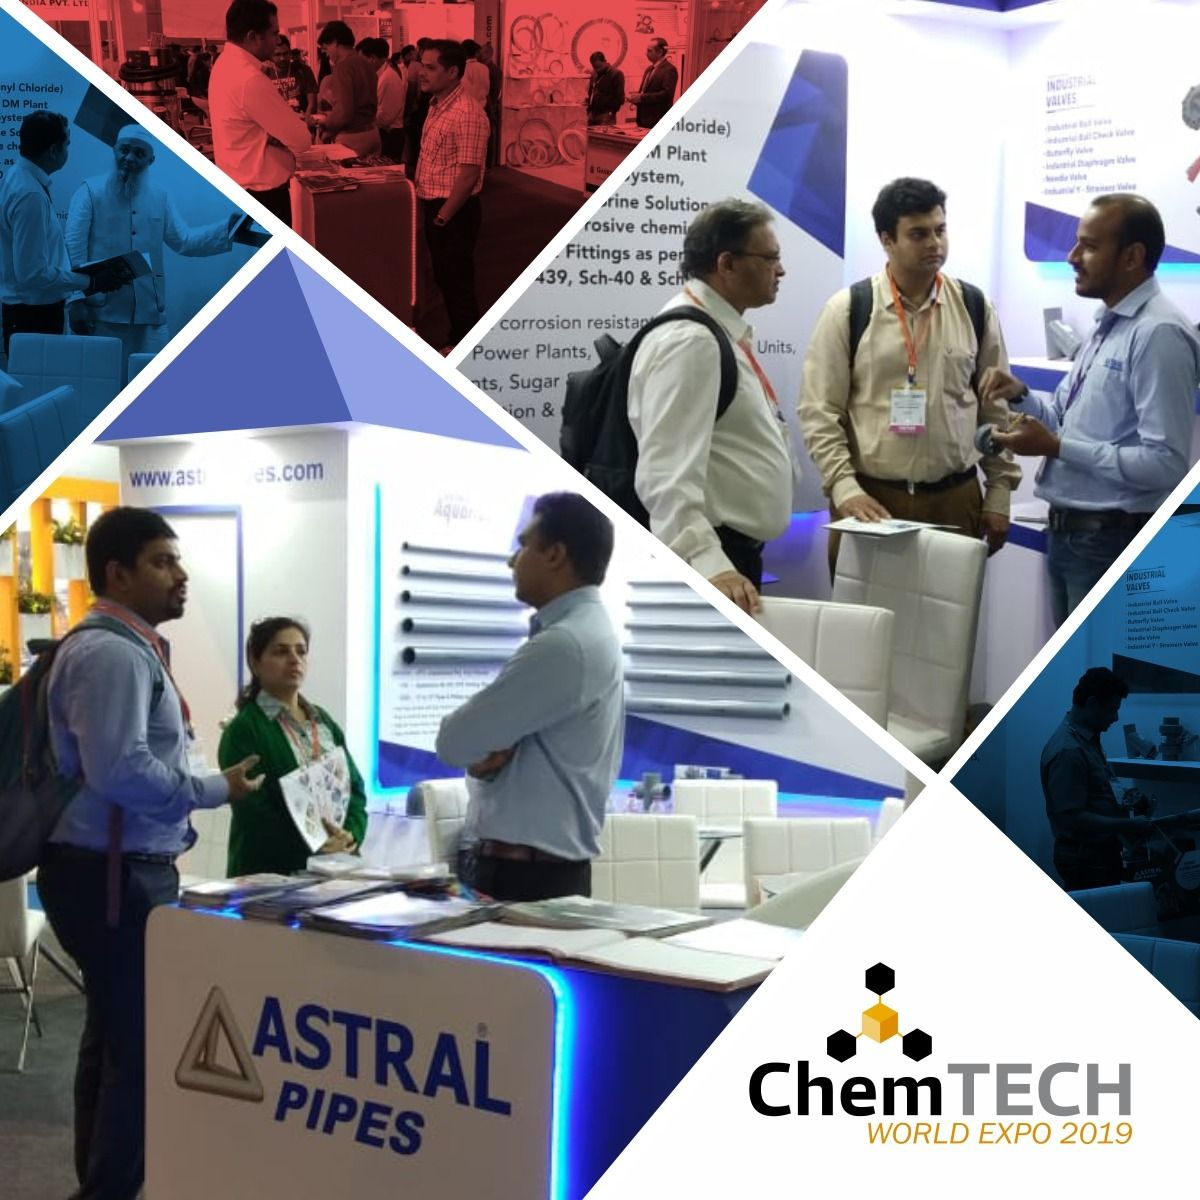 chemtech2019 hashtag on Twitter